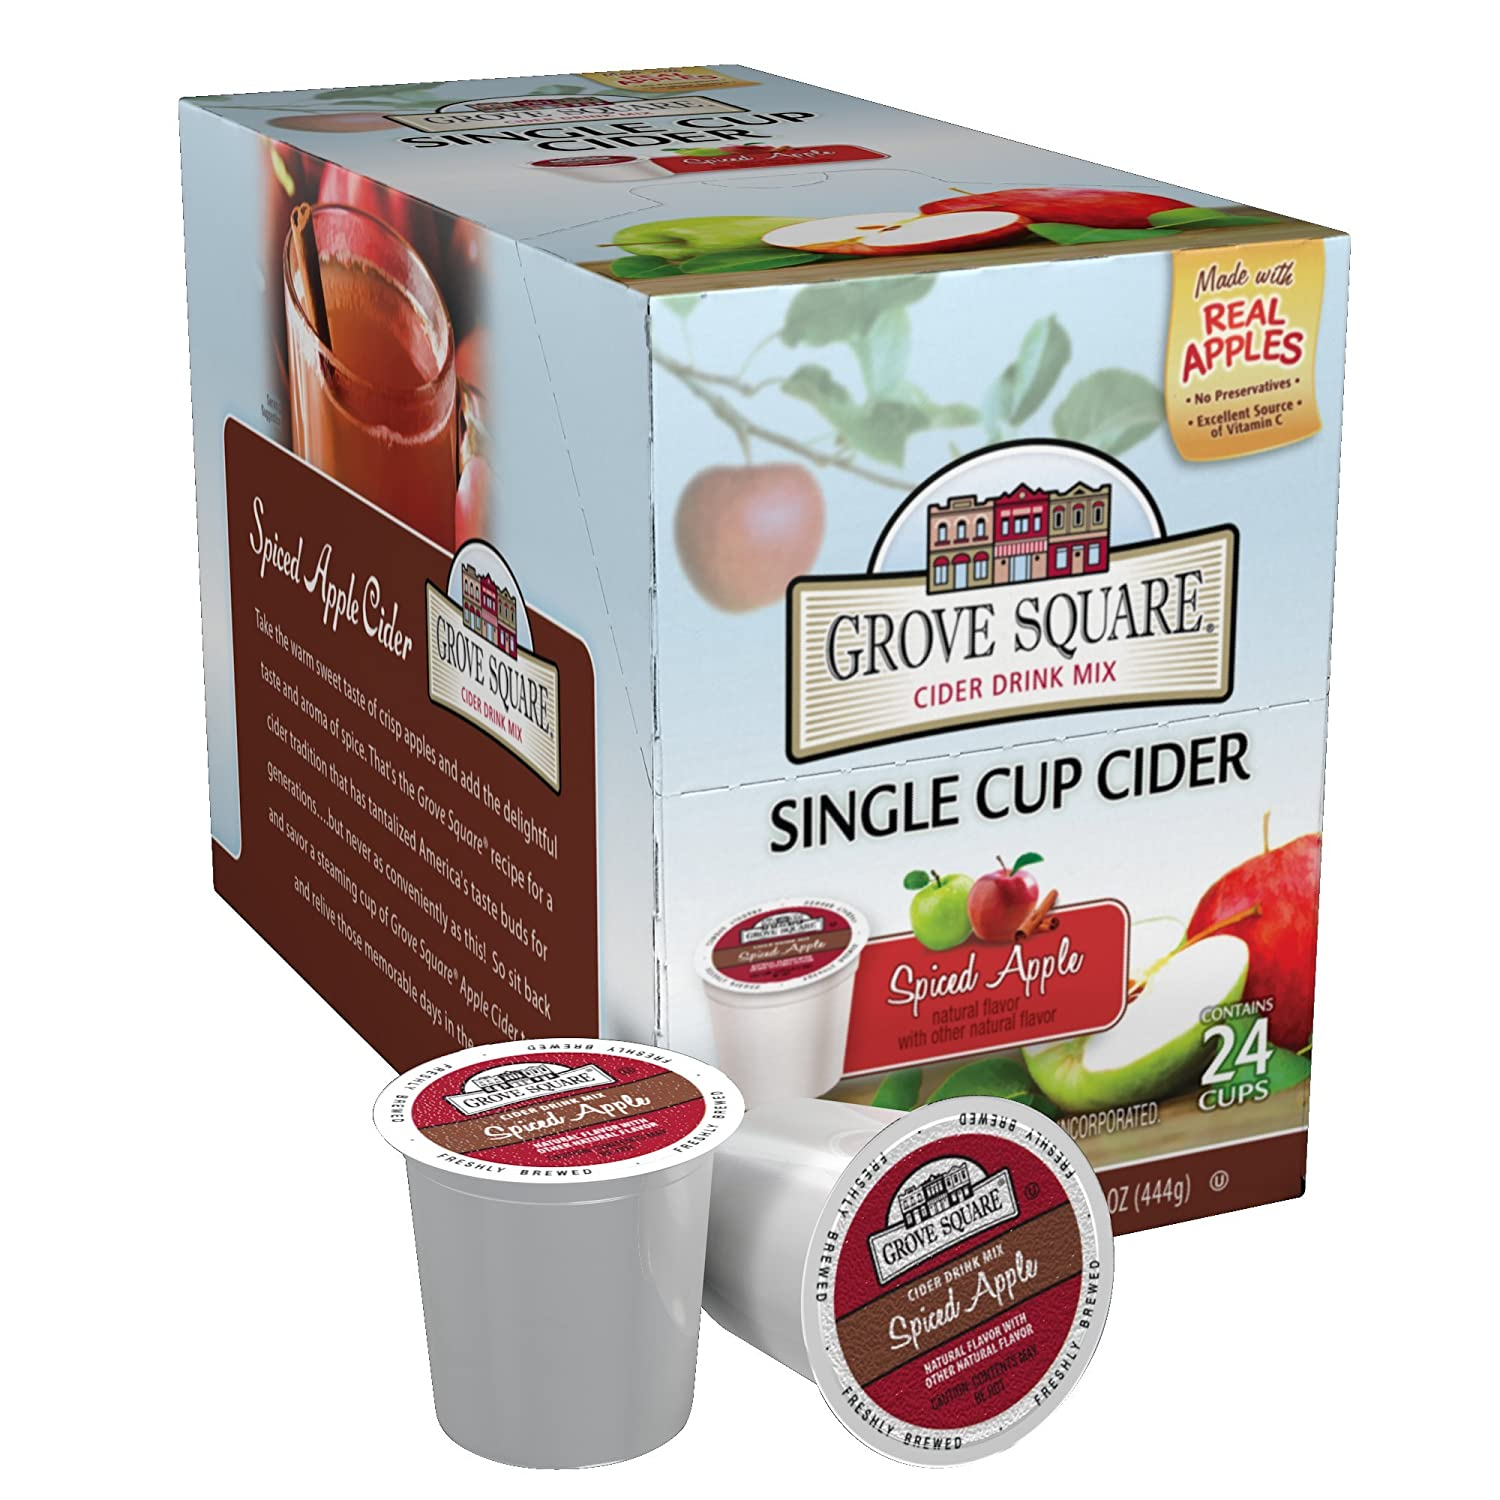 Grove Square Cider Single Serve Cups, Spiced Apple, 24 Count (Pack of 1)